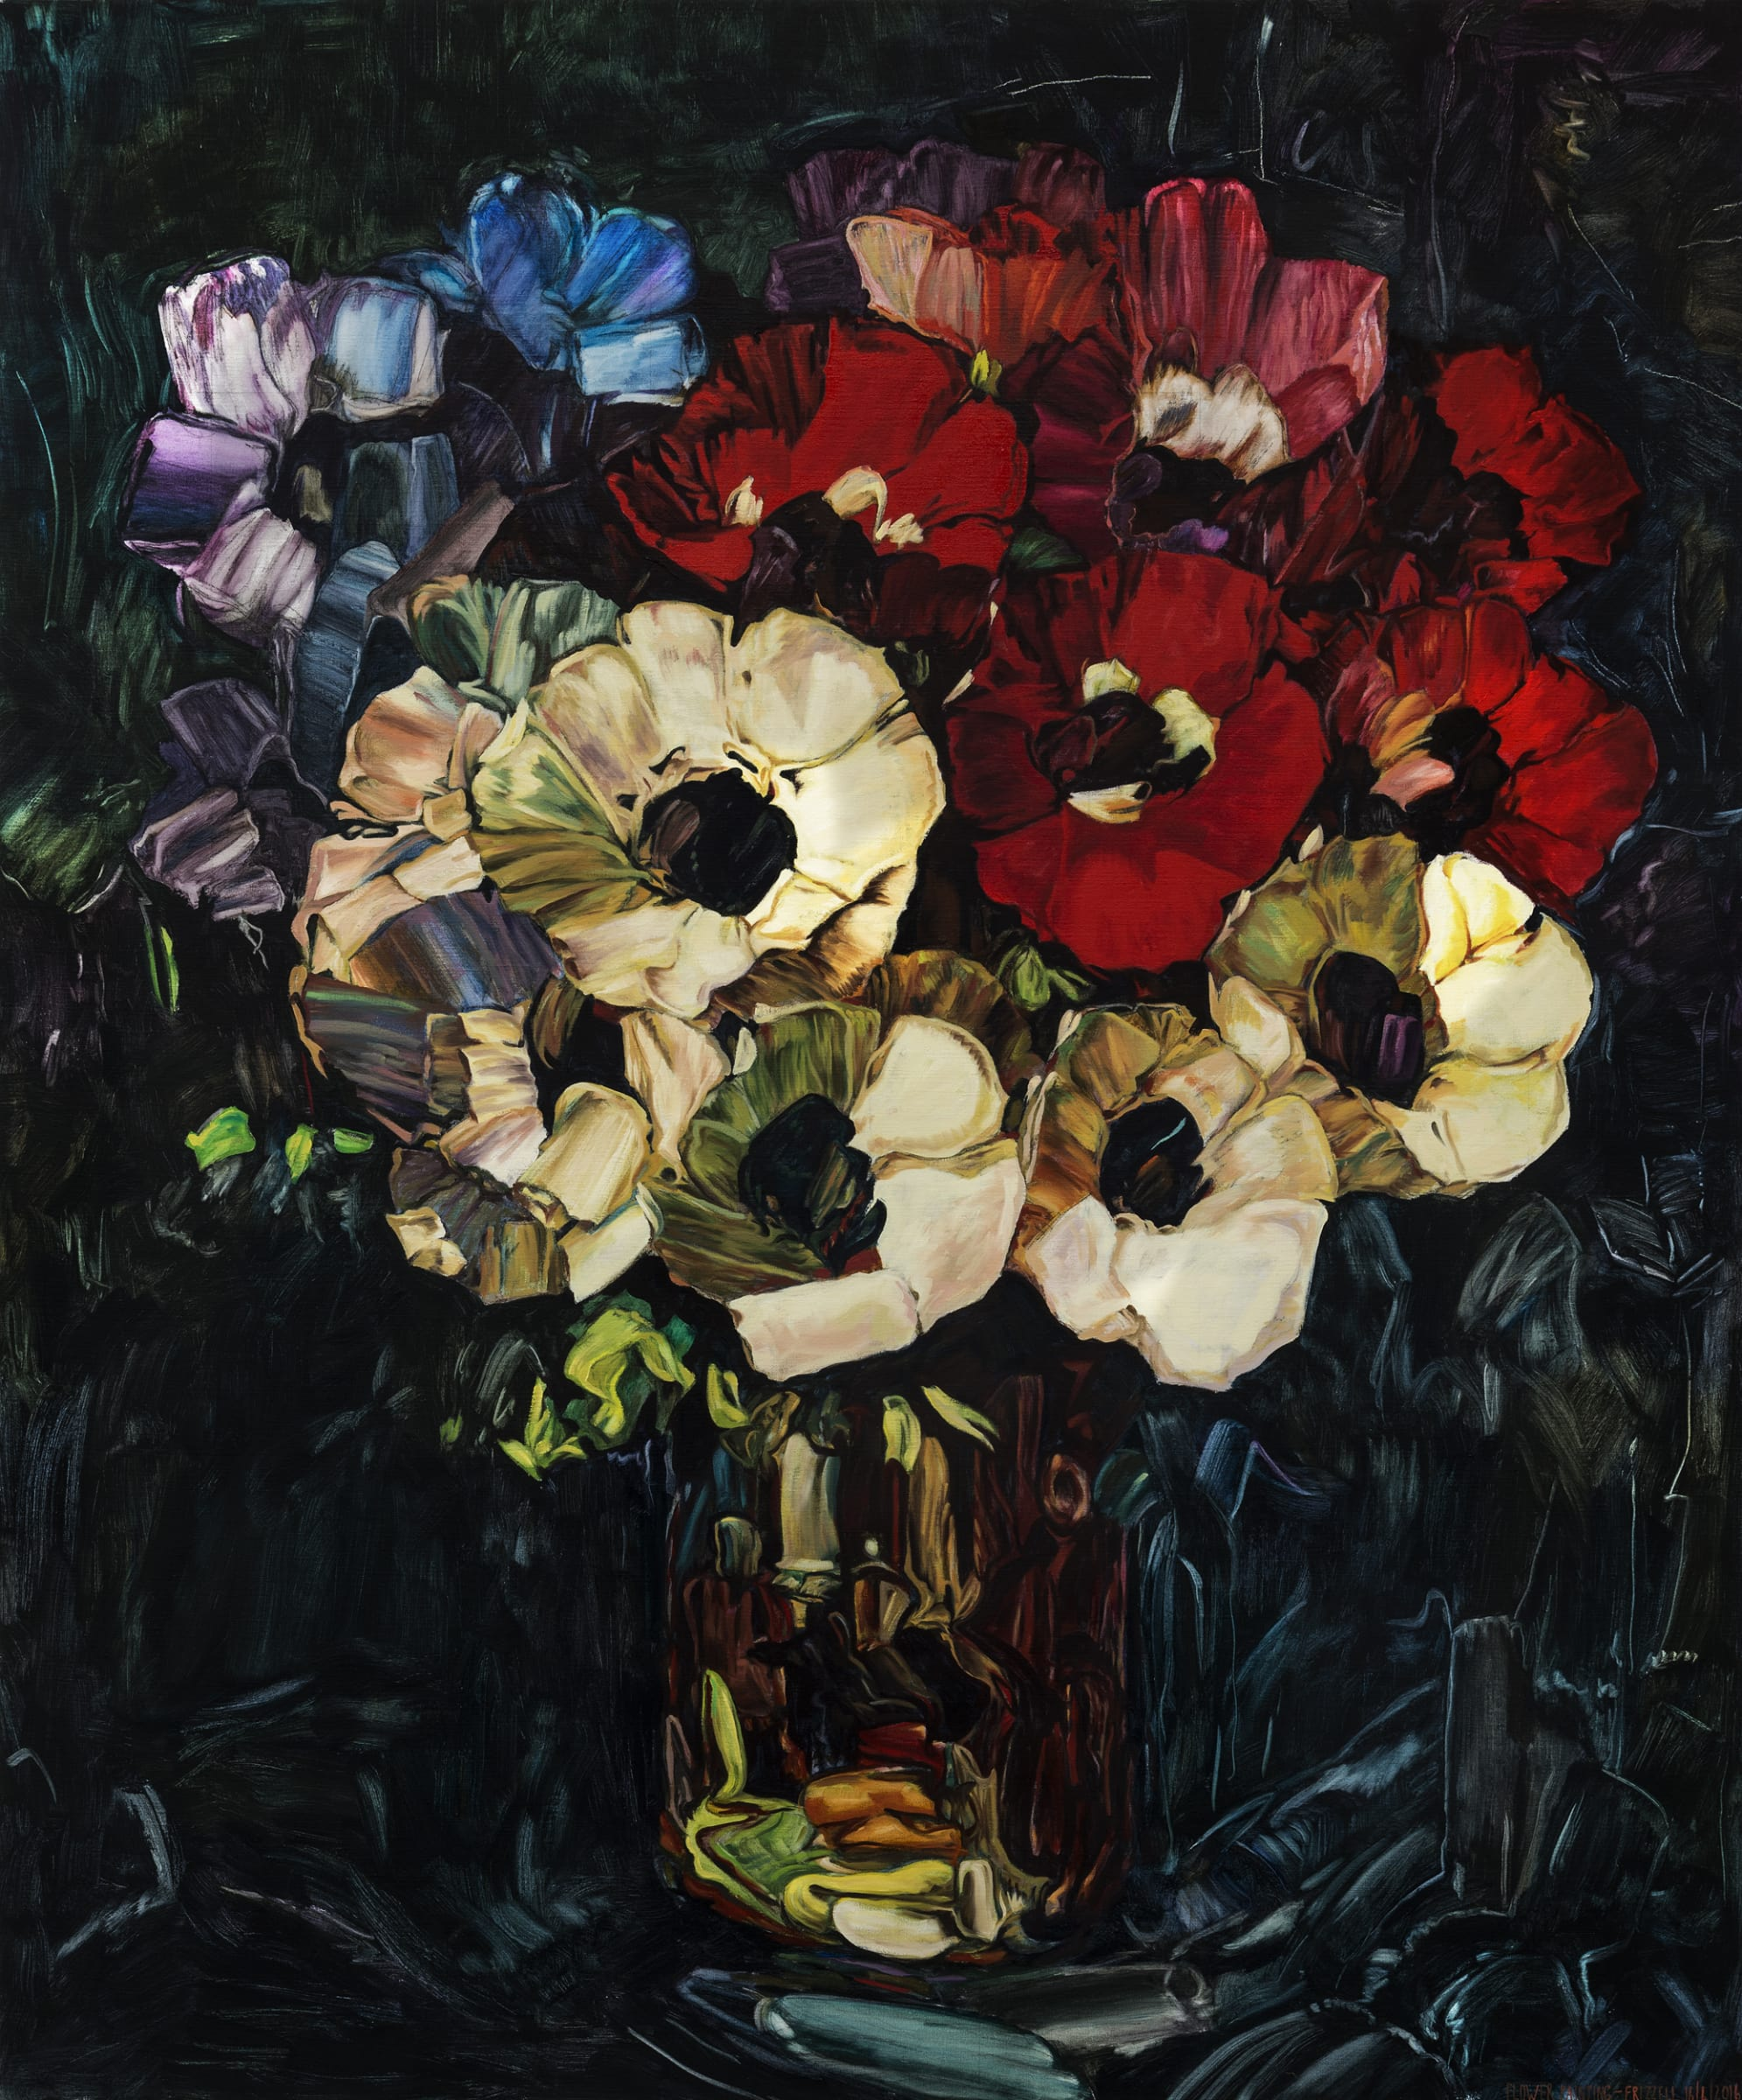 """<span class=""""link fancybox-details-link""""><a href=""""/artists/45-dick-frizzell/works/7192-dick-frizzell-flower-painting-2016/"""">View Detail Page</a></span><div class=""""artist""""><strong>Dick FRIZZELL</strong></div> <div class=""""title""""><em>Flower Painting</em>, 2016</div> <div class=""""medium"""">Oil on canvas</div> <div class=""""dimensions"""">70.9 x 59.1 in<br />180 x 150 cm</div>"""